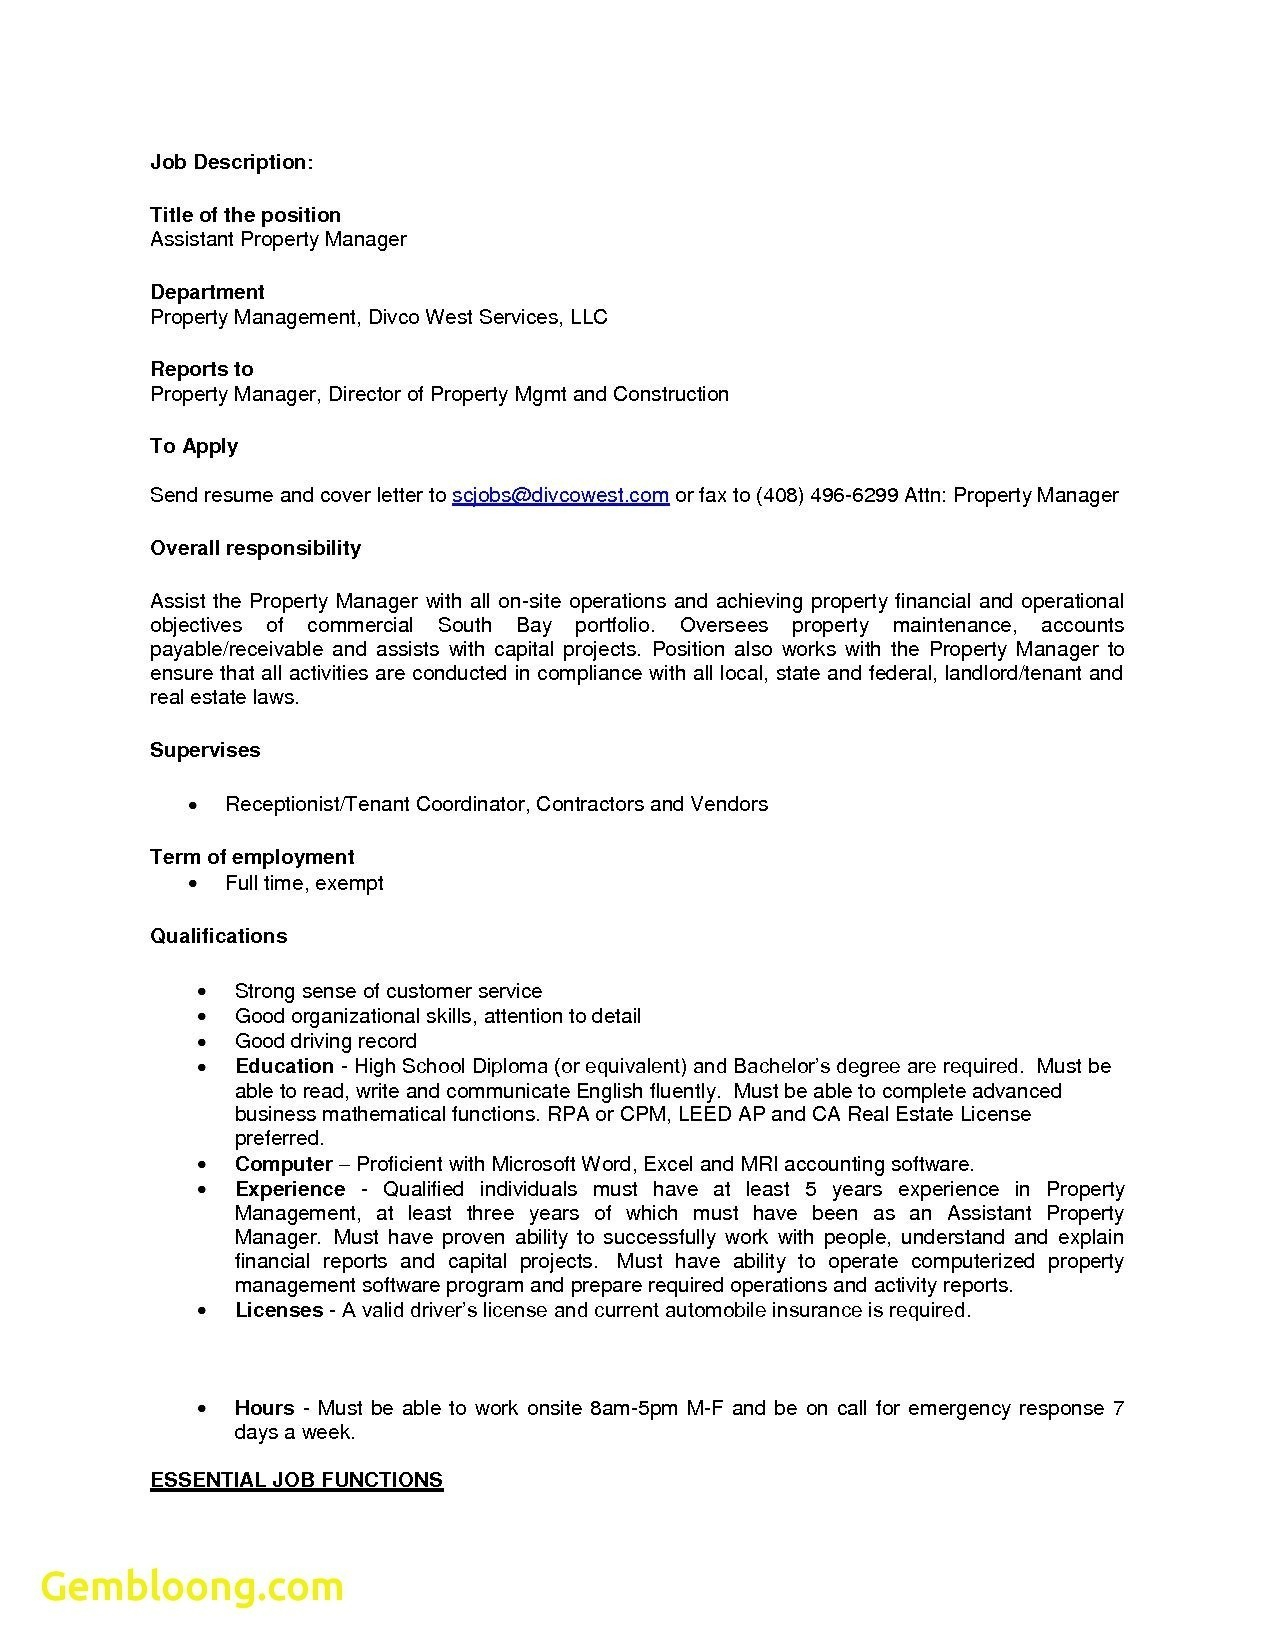 Job Offer Letter Template Free Download Collection Letter Template